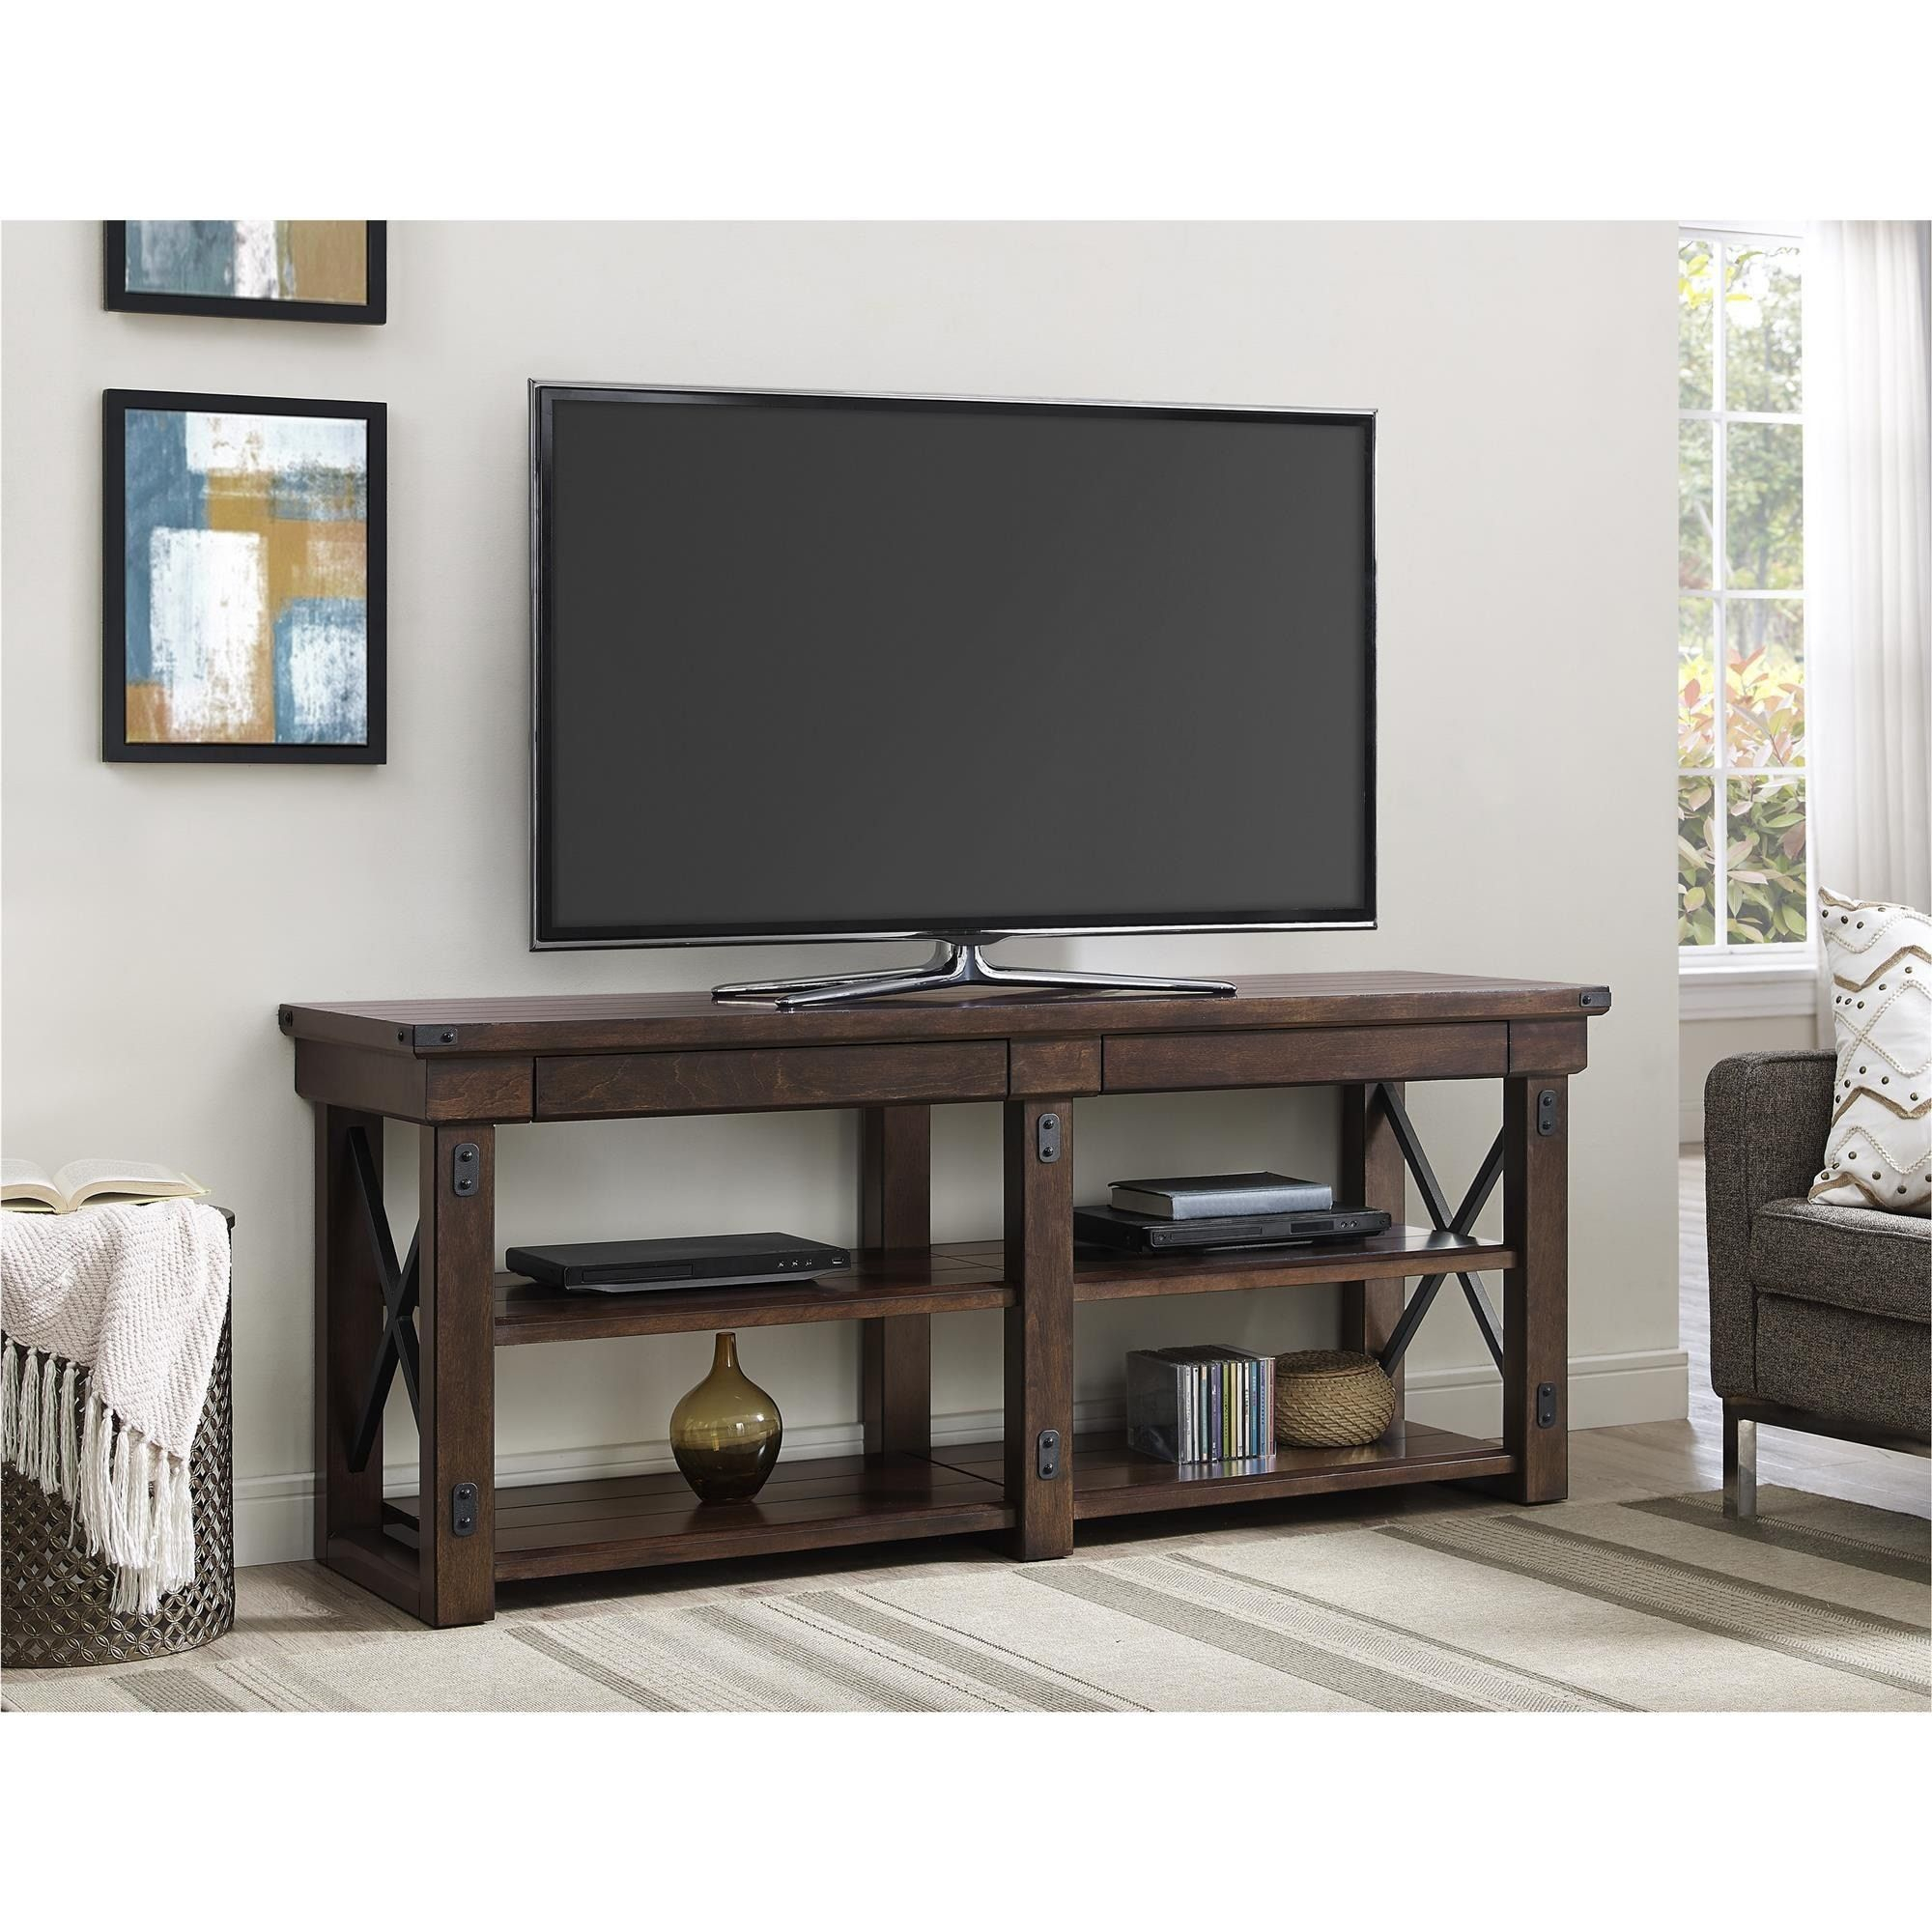 Ameriwood Home Wildwood Mahogany Veneer 65 Inch Tv Stand (65 Inch Tv Within Casey Grey 74 Inch Tv Stands (View 5 of 30)